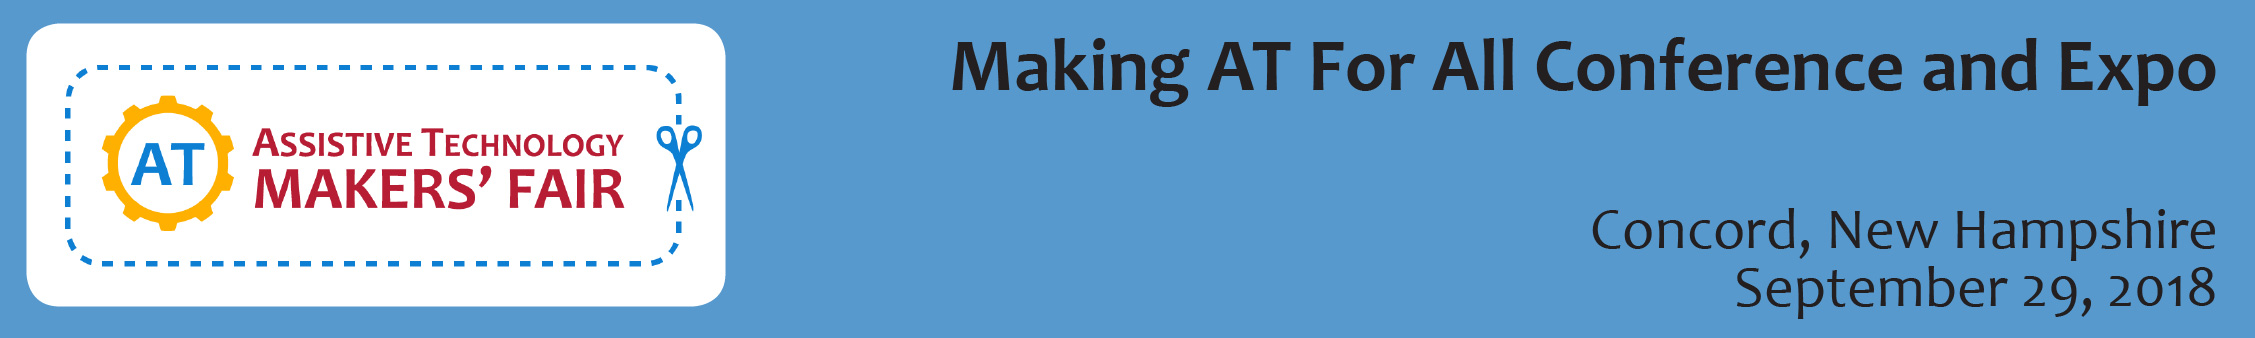 AT Makers Fair: Making AT for All Conference and Expo